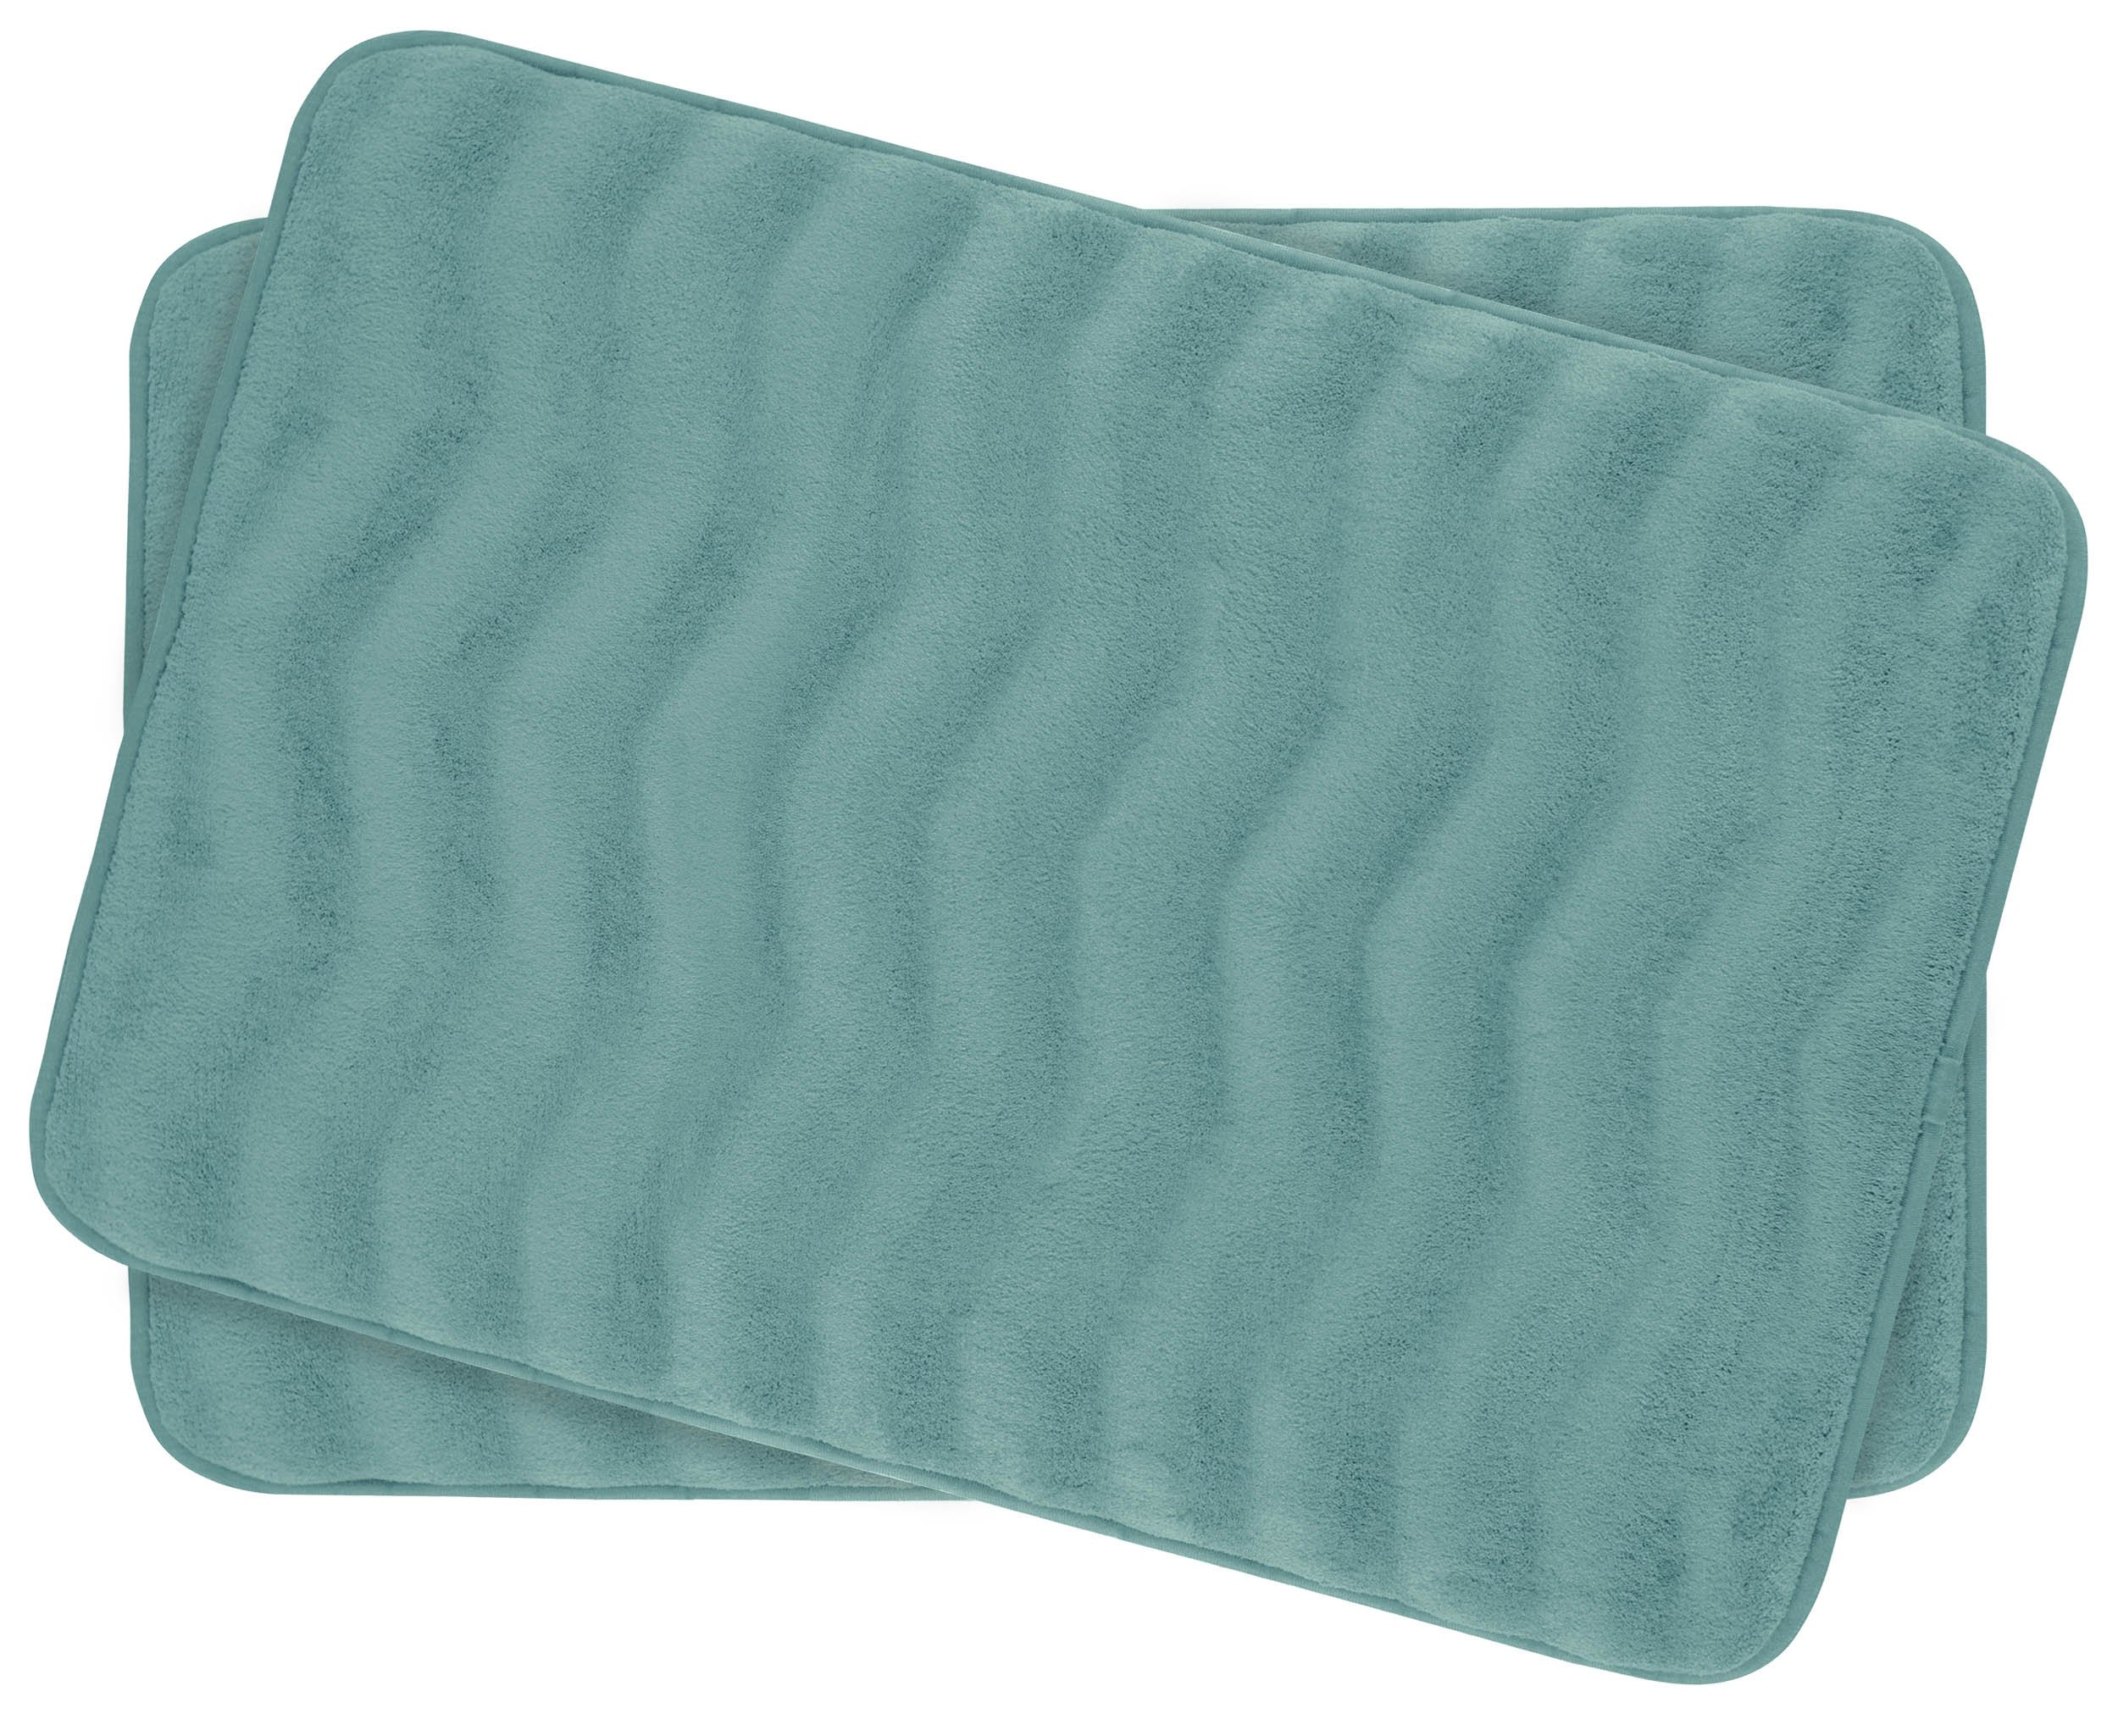 Bounce Comfort Waves Extra Thick Memory Foam Bath Mat Set - Plush 2 Piece Set with BounceComfort Technology, 17 x 24 in. Marine Blue